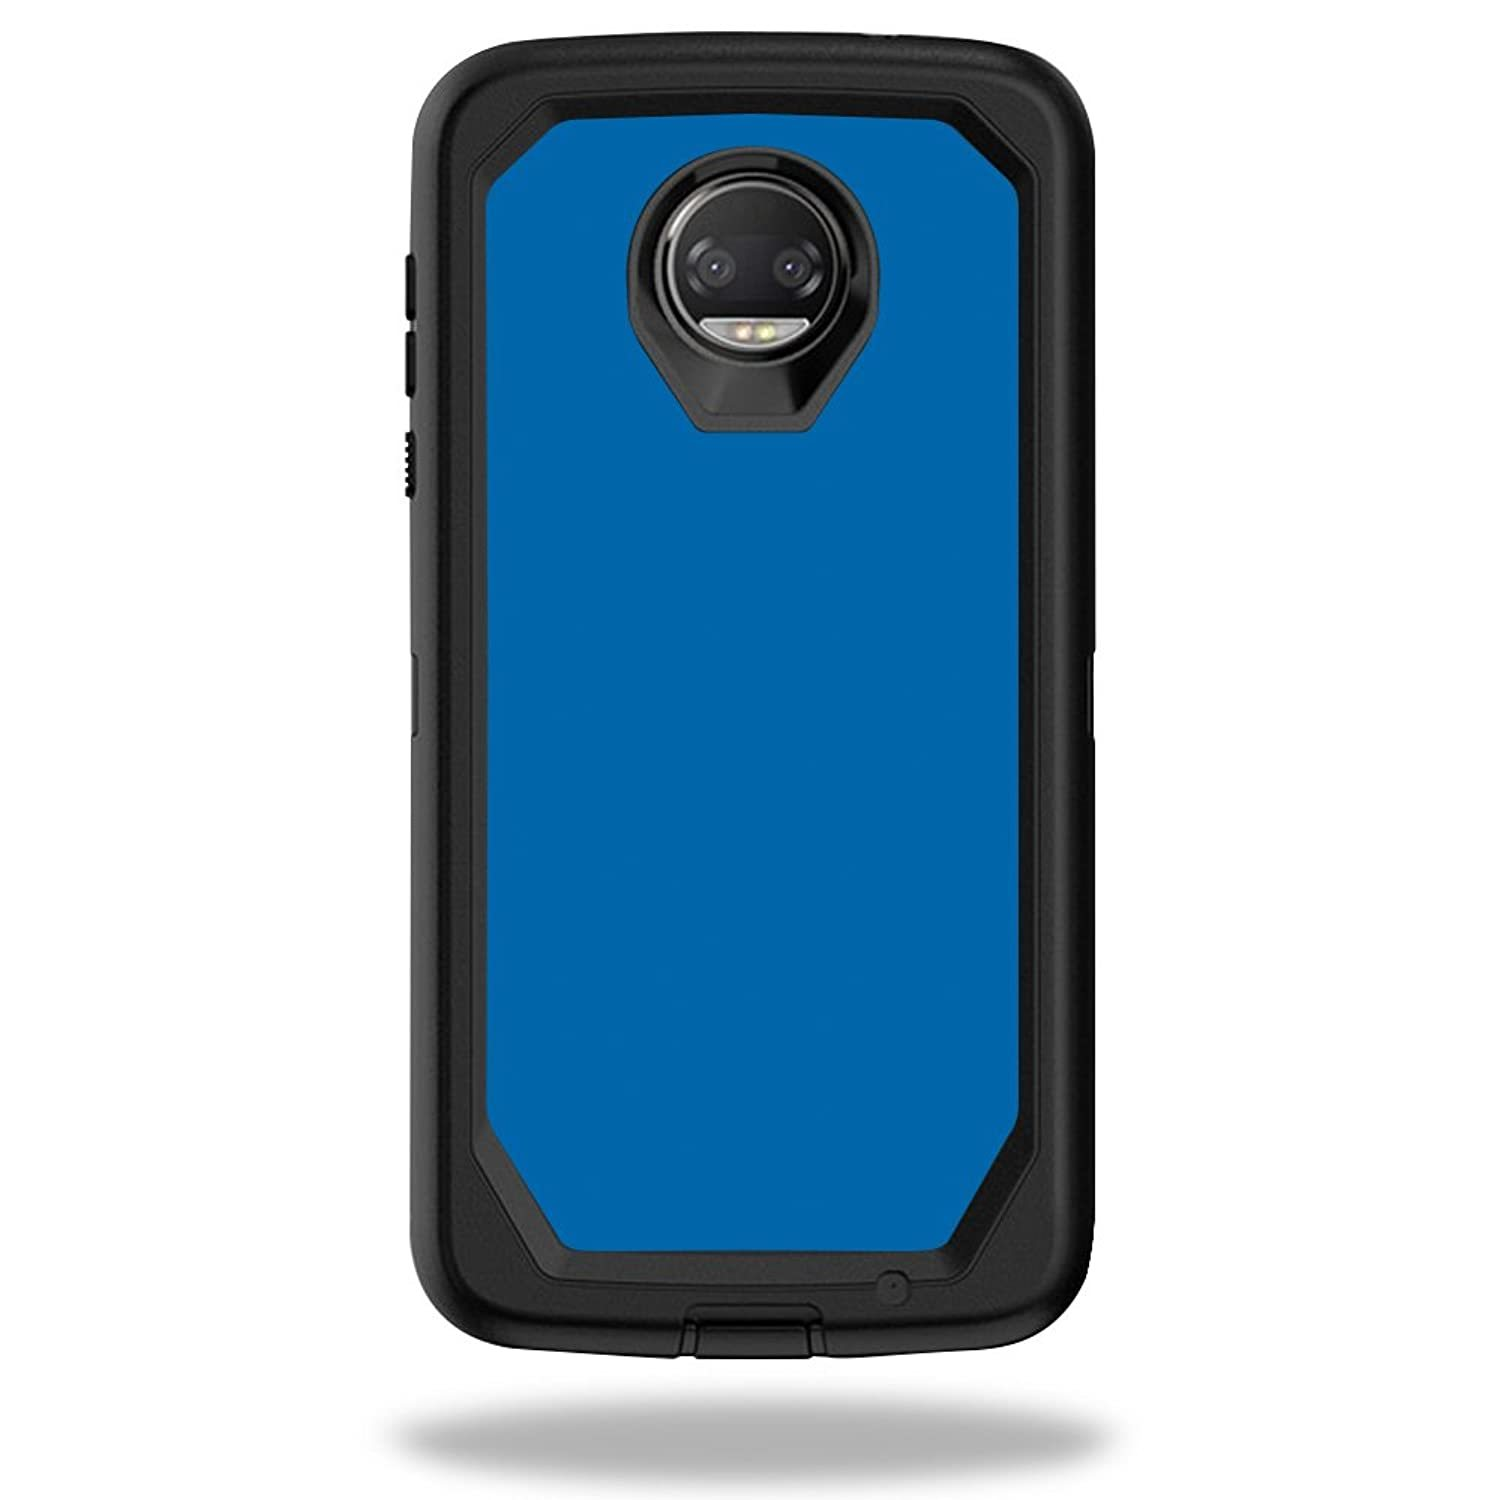 Skin Compatible With Box Defender Motorola Moto Z2 Force - Solid Blue   Protecti - $6.99